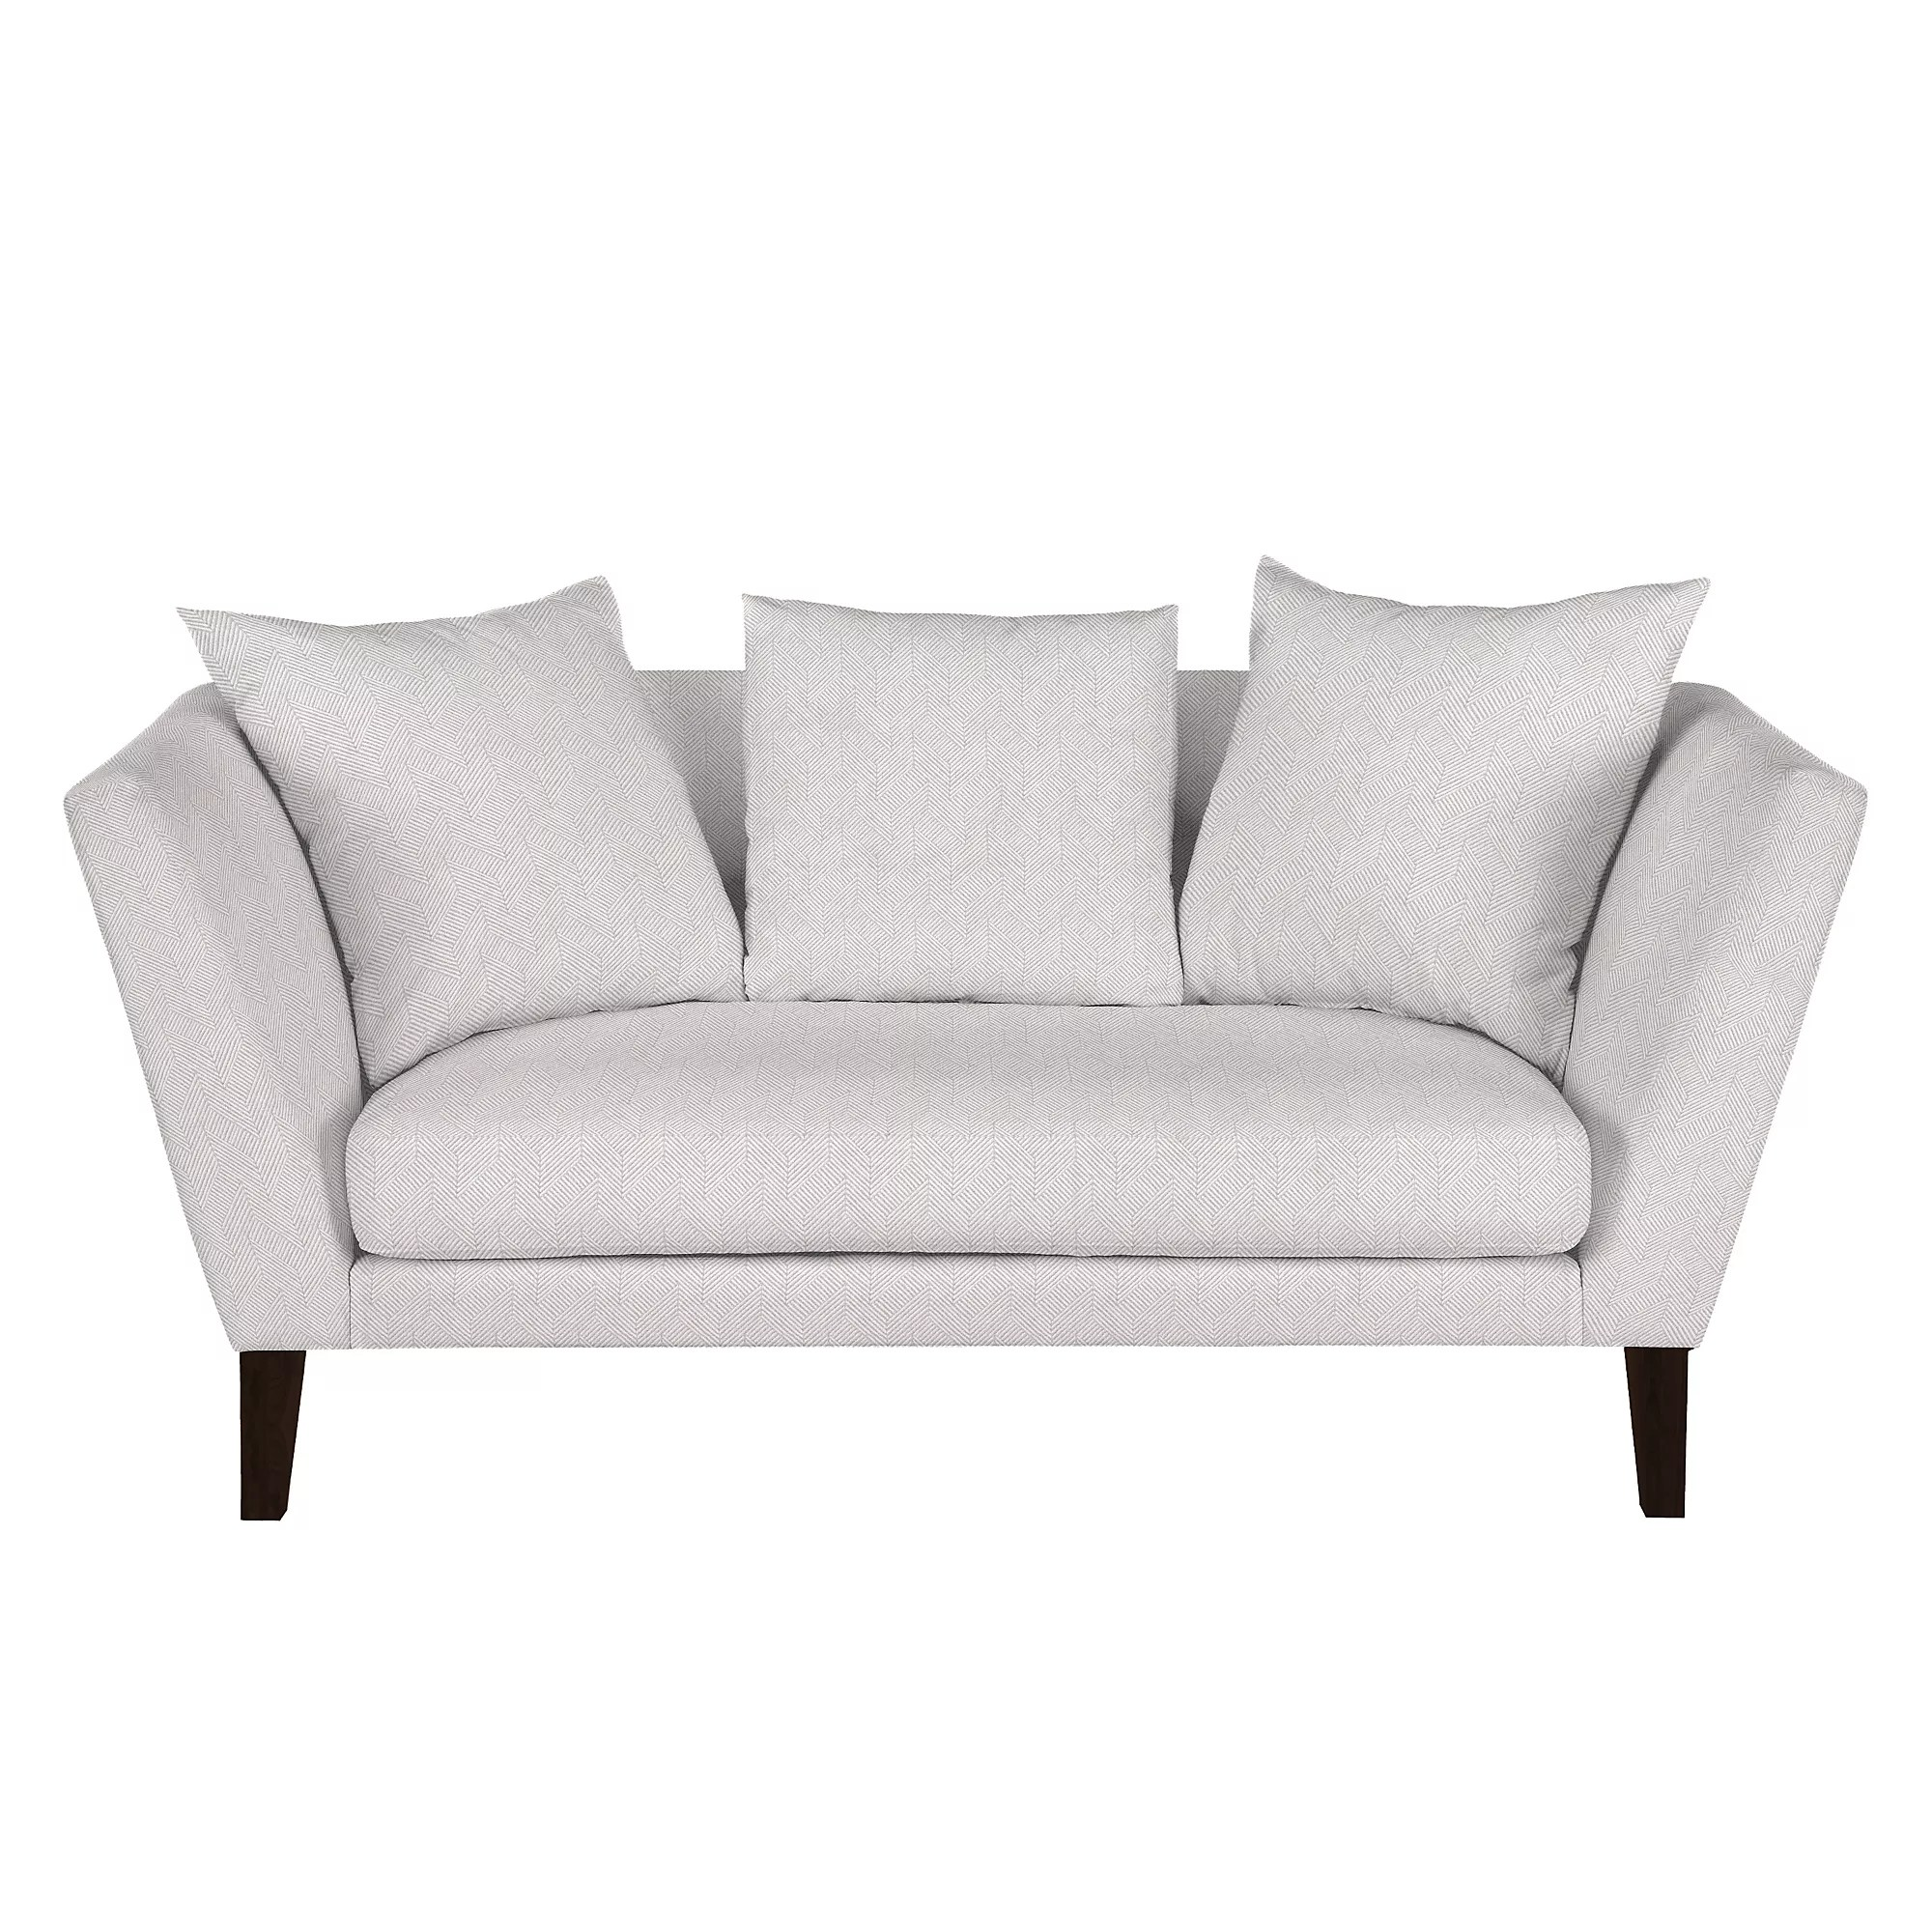 regency sofa john lewis how can you make a bed more comfortable medium escher smoke at partners buyjohn online johnlewis com